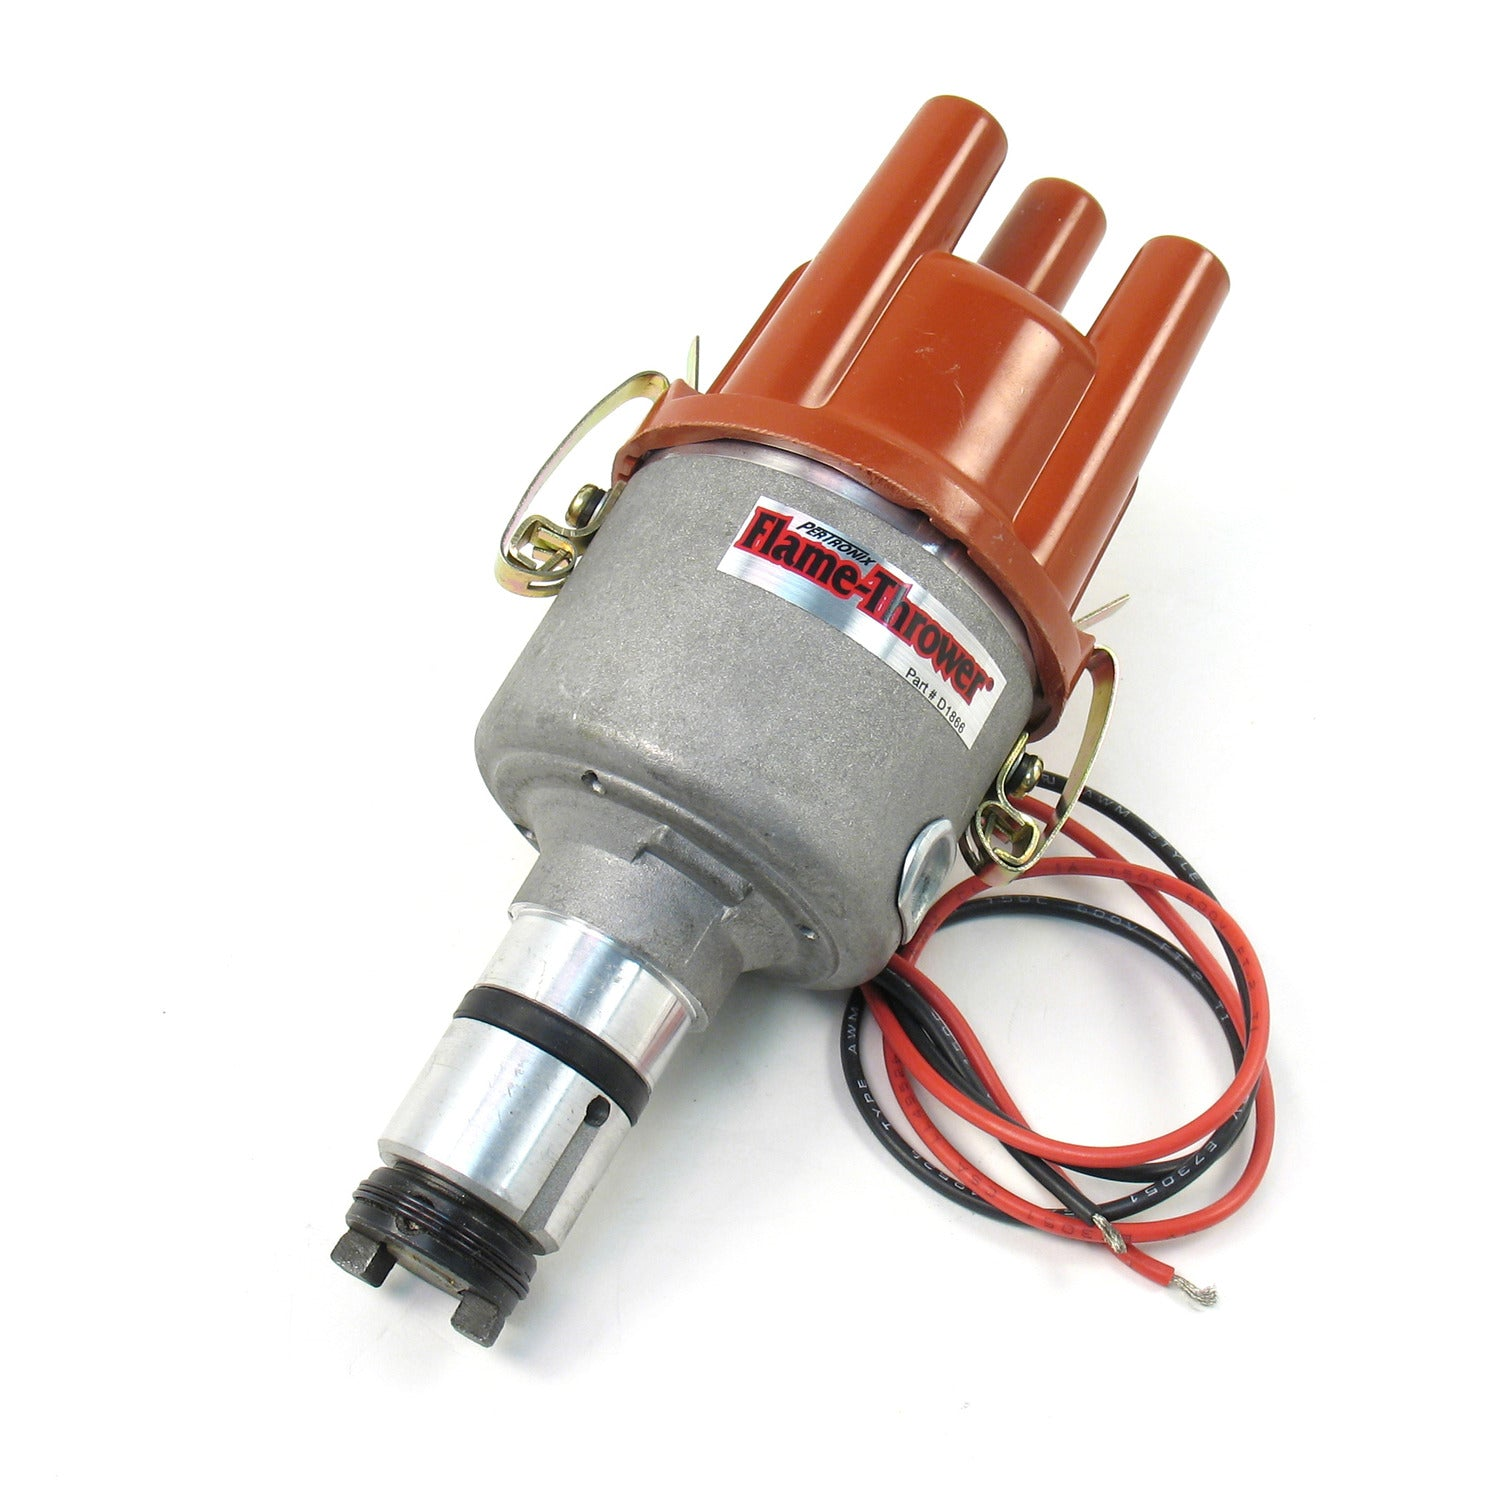 PerTronix D182604 Flame-Thrower Electronic Distributor Cast VW Type 1 Engine Plug and Play with Ignitor II Non Vacuum